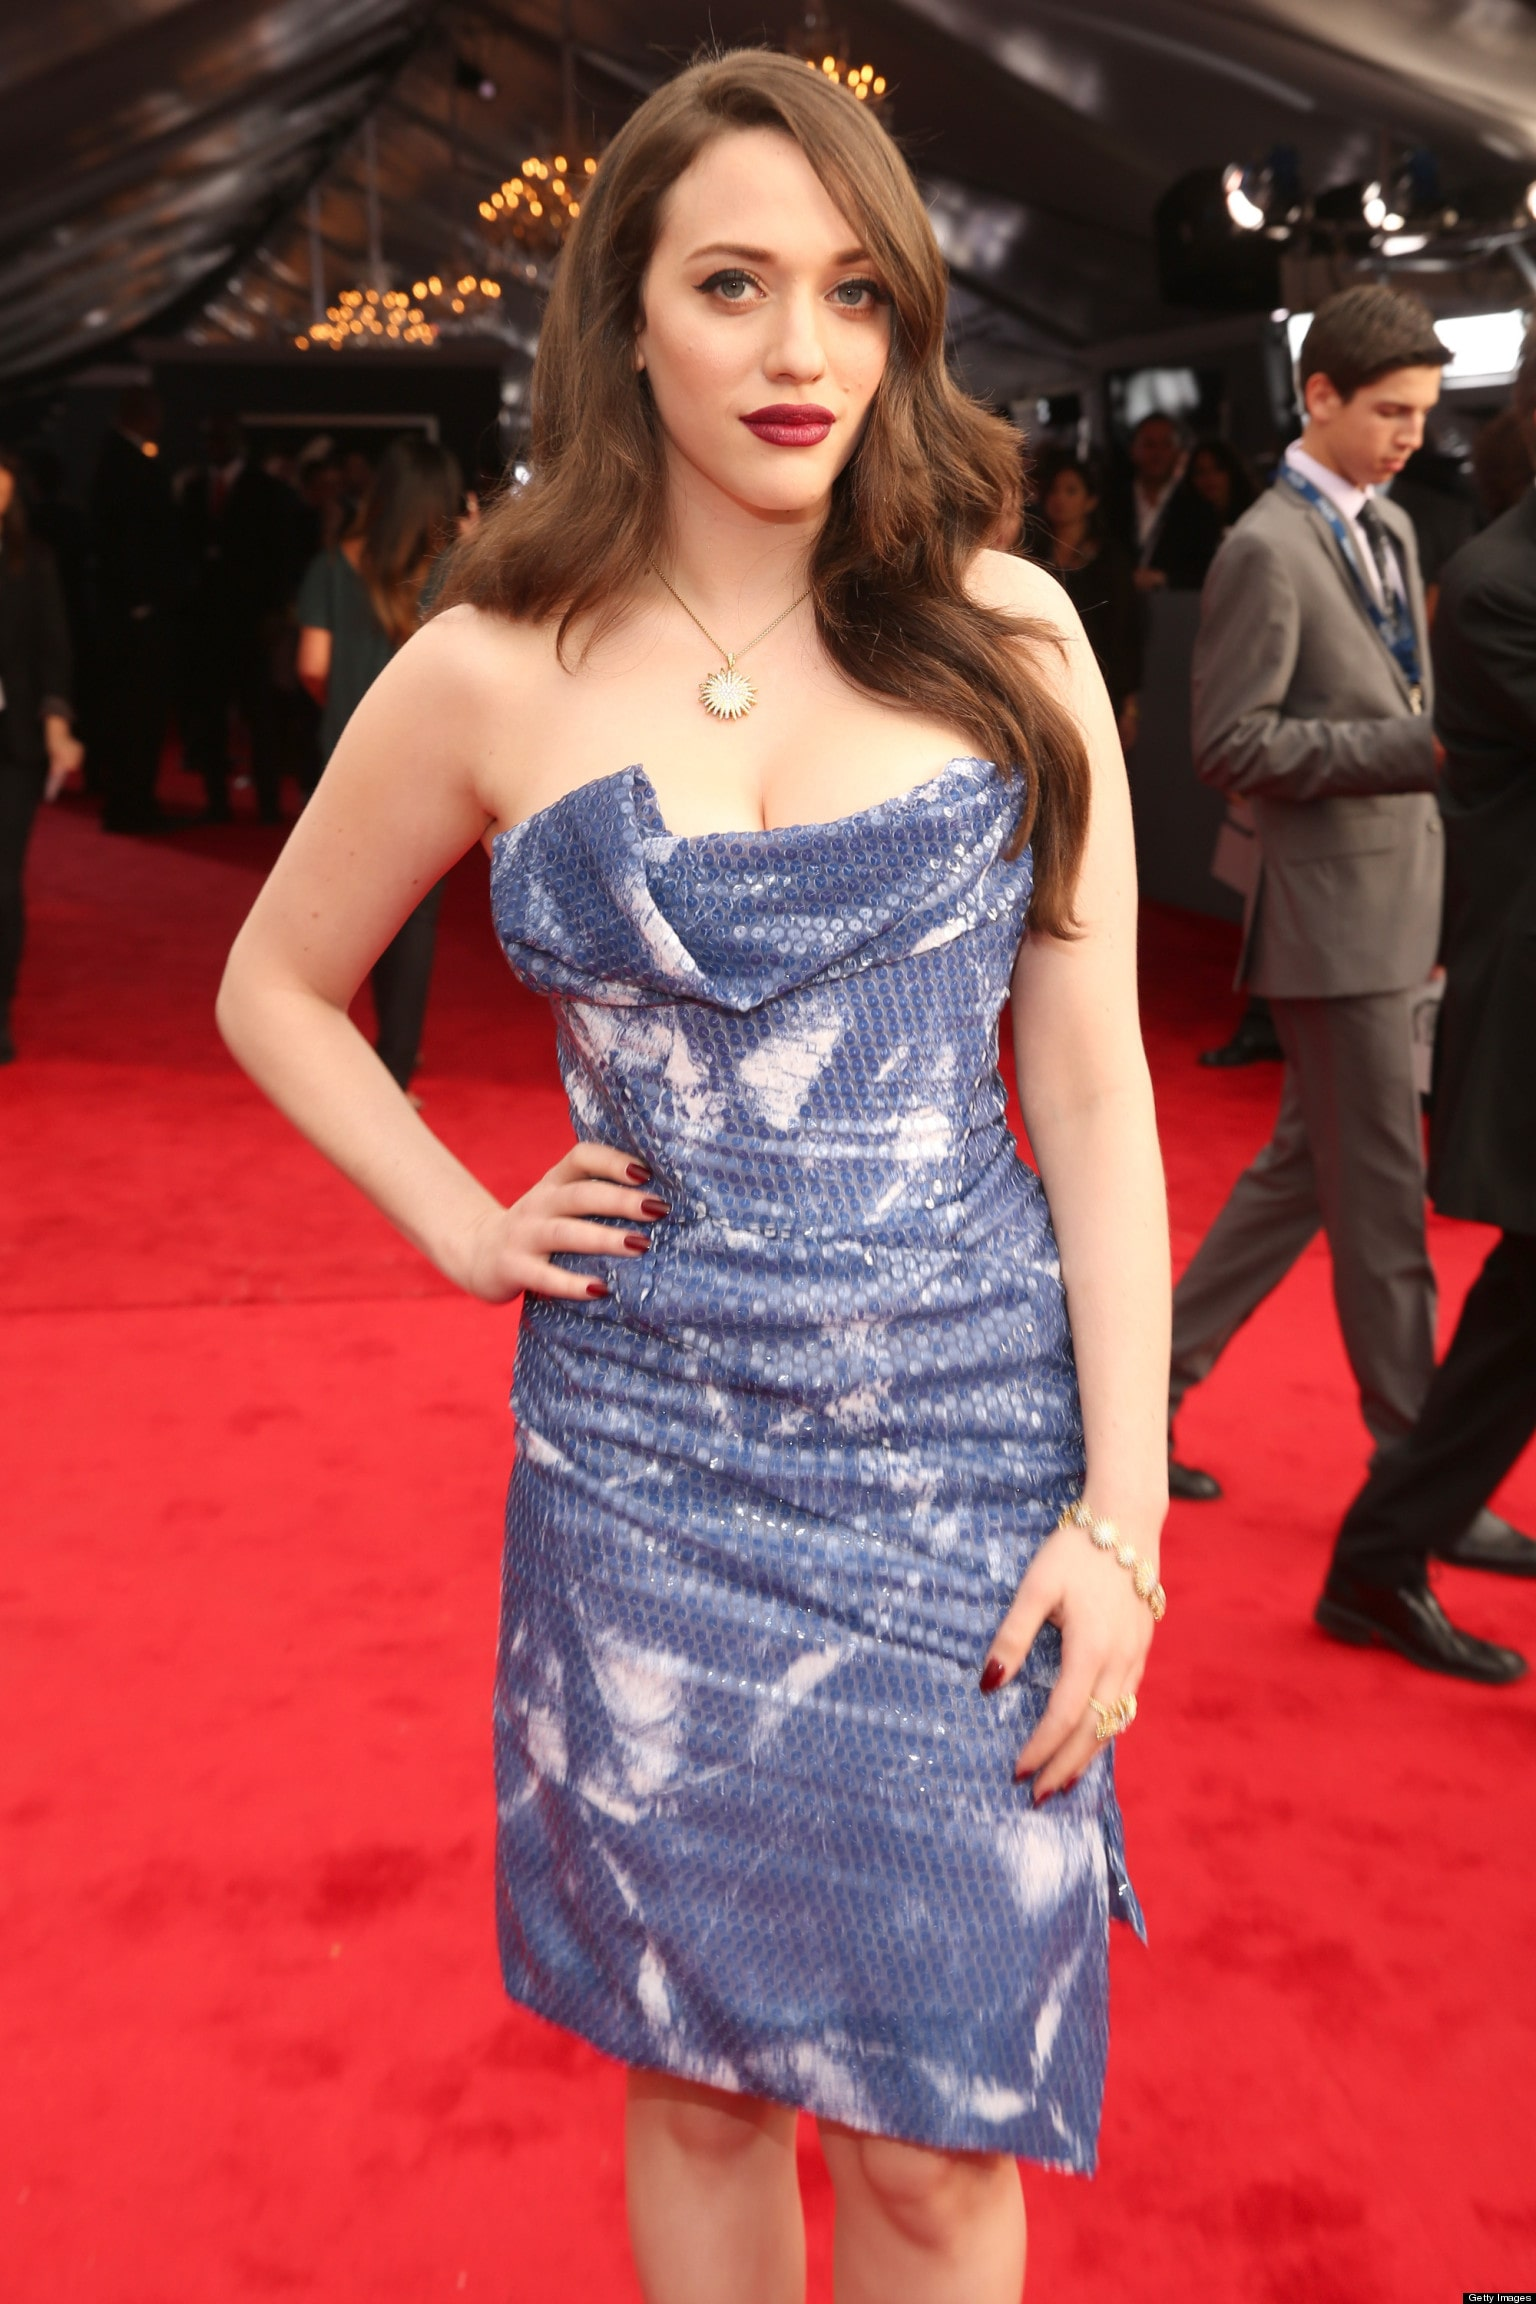 Kat-Dennings-sexy-lady-picture